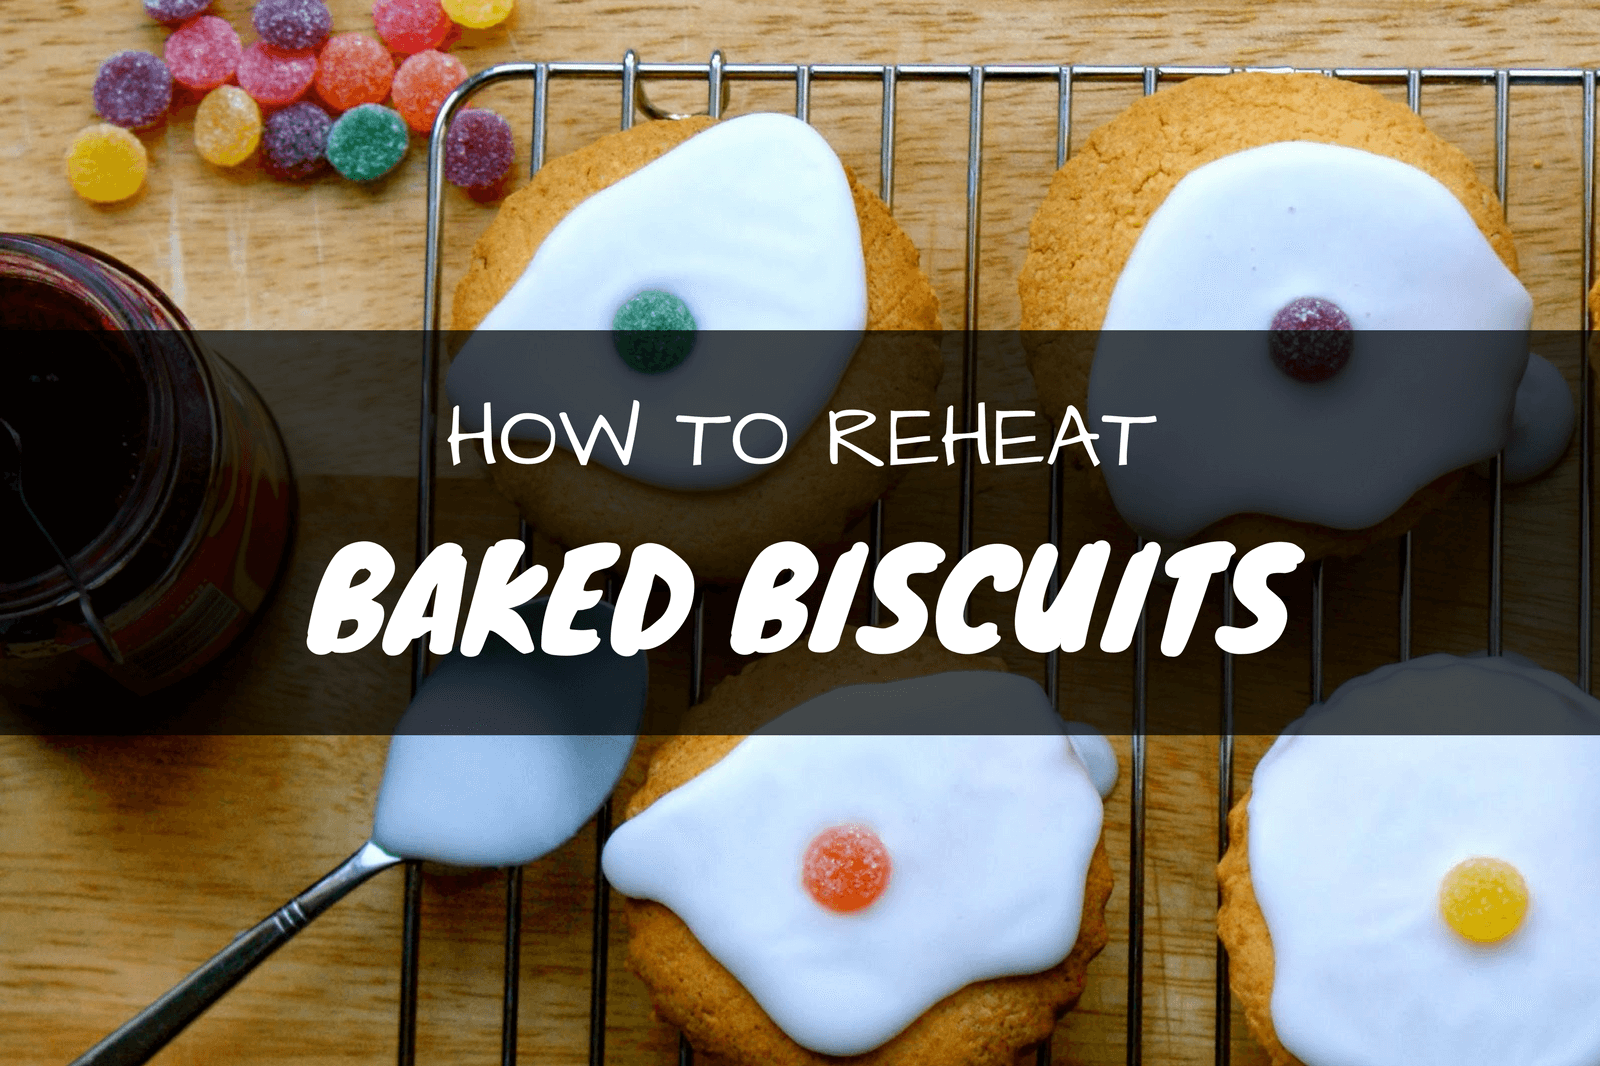 How to Reheat Biscuits